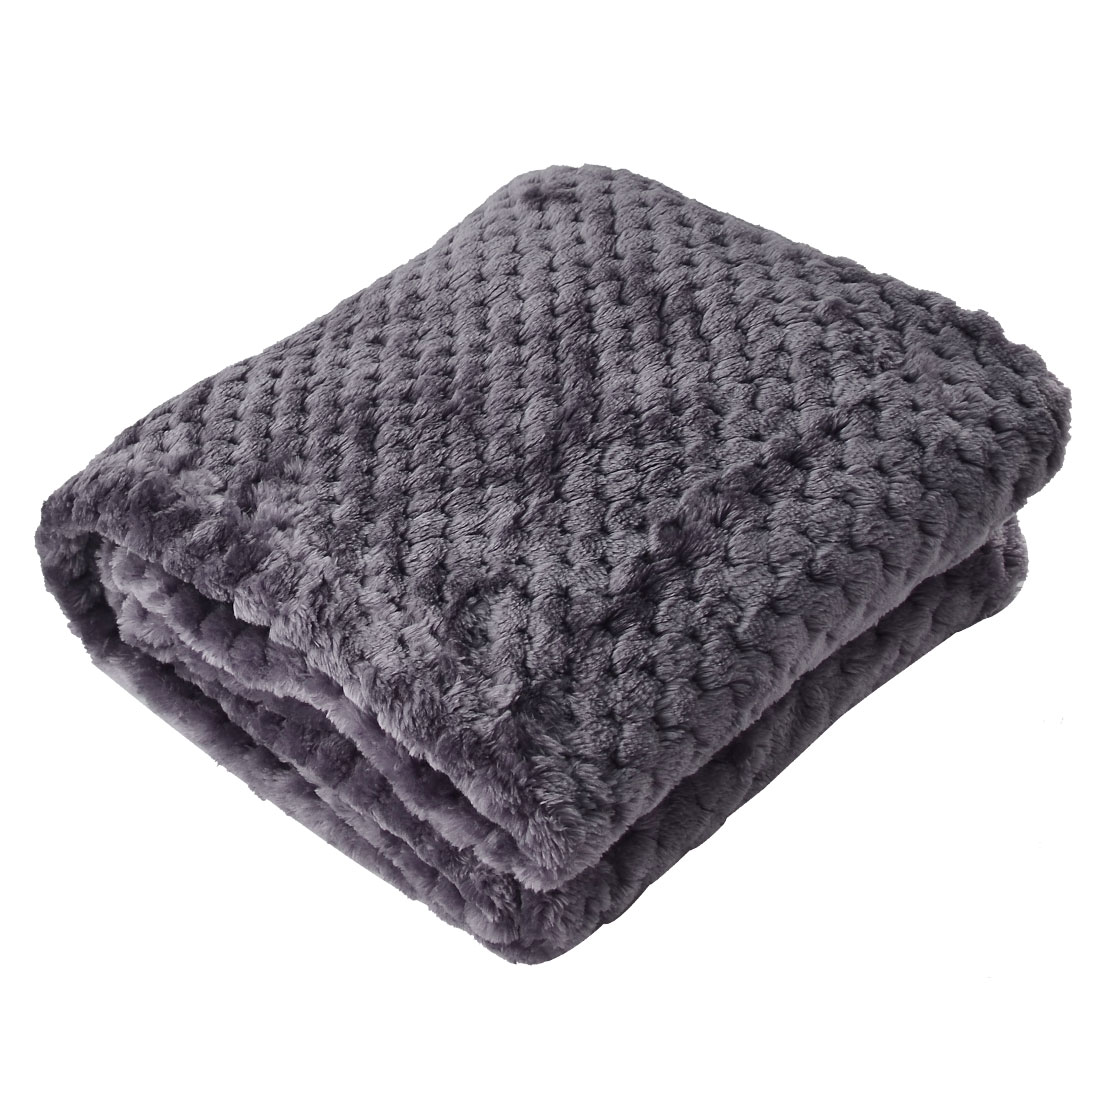 Home Bedroom Travel Warm Soft Throw Mesh Blanket Bed Rug Plush Fleece Lavender